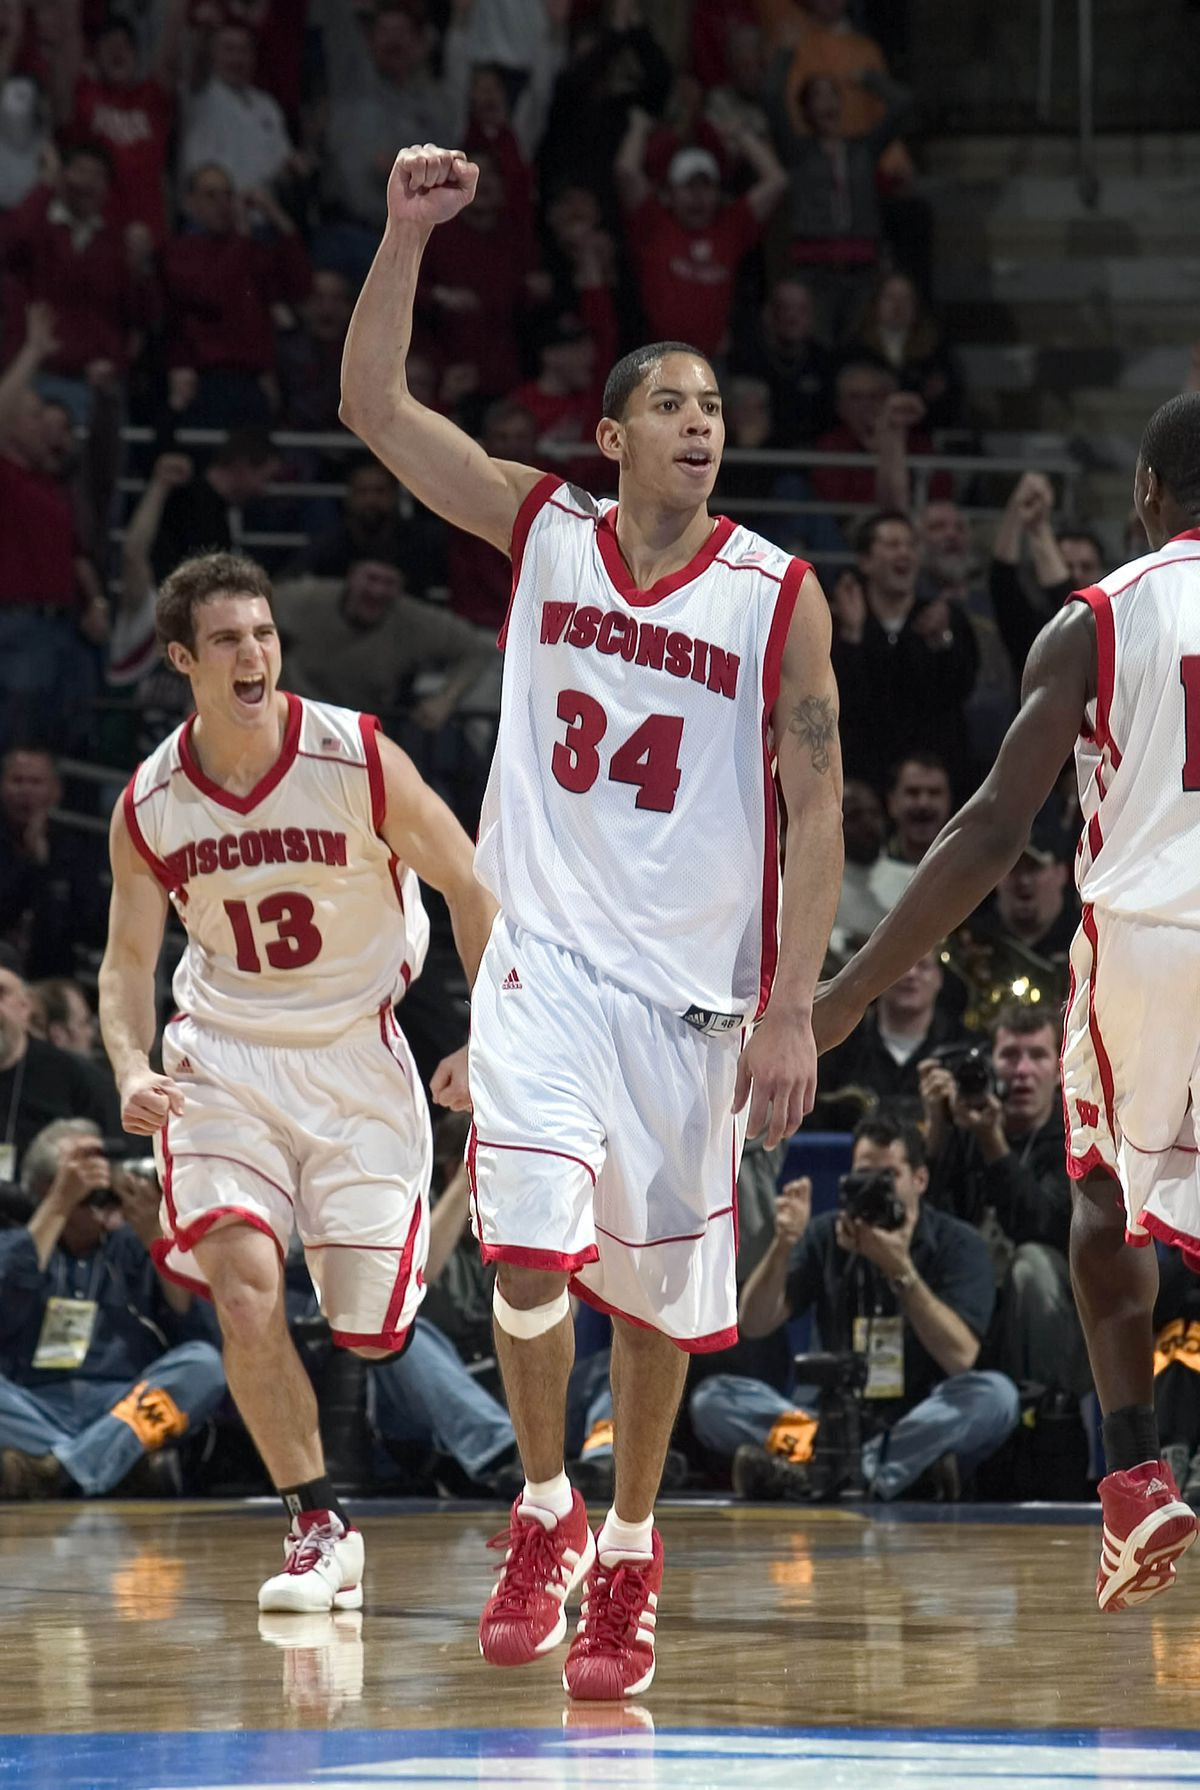 19 March 2004: Devin Harris of the Wisconsin Badgers during the Badgers 76-64 victory over the Richmond Spiders in the first round of the NCAA Tournament at the Bradley Center in Milwaukee, WI.